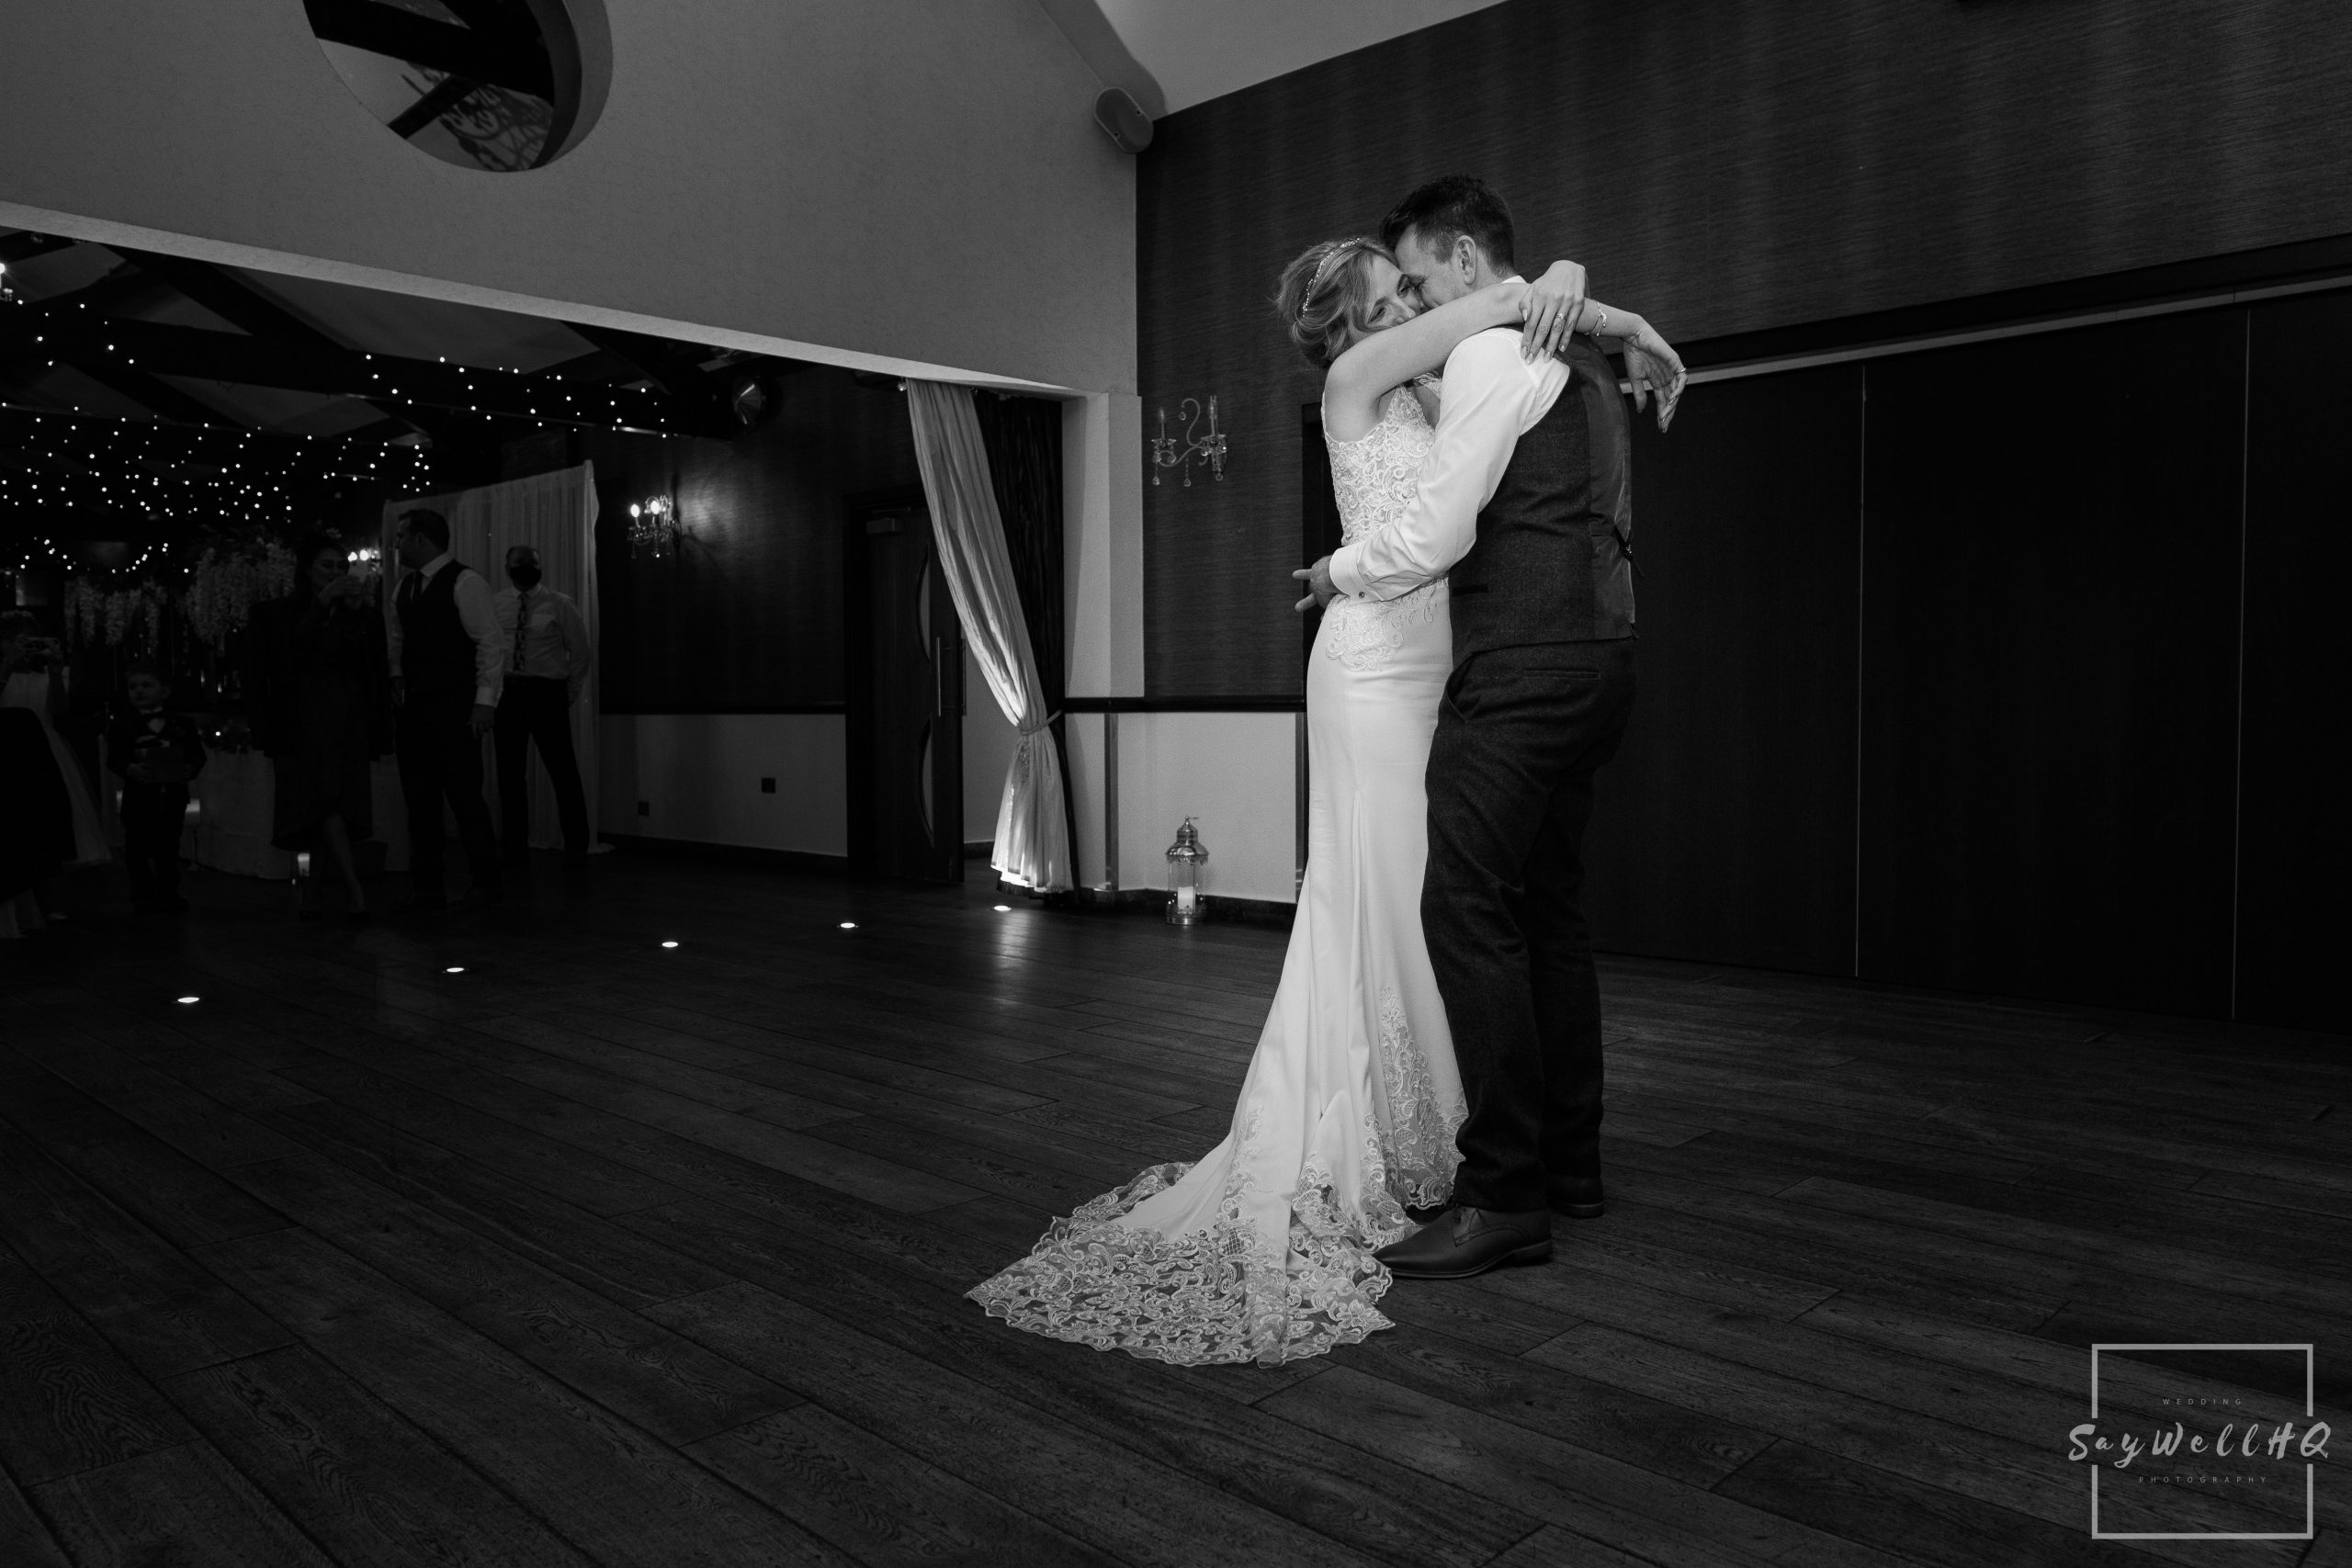 Bride and groom enjoy their first dance during the covid 19 lockdown